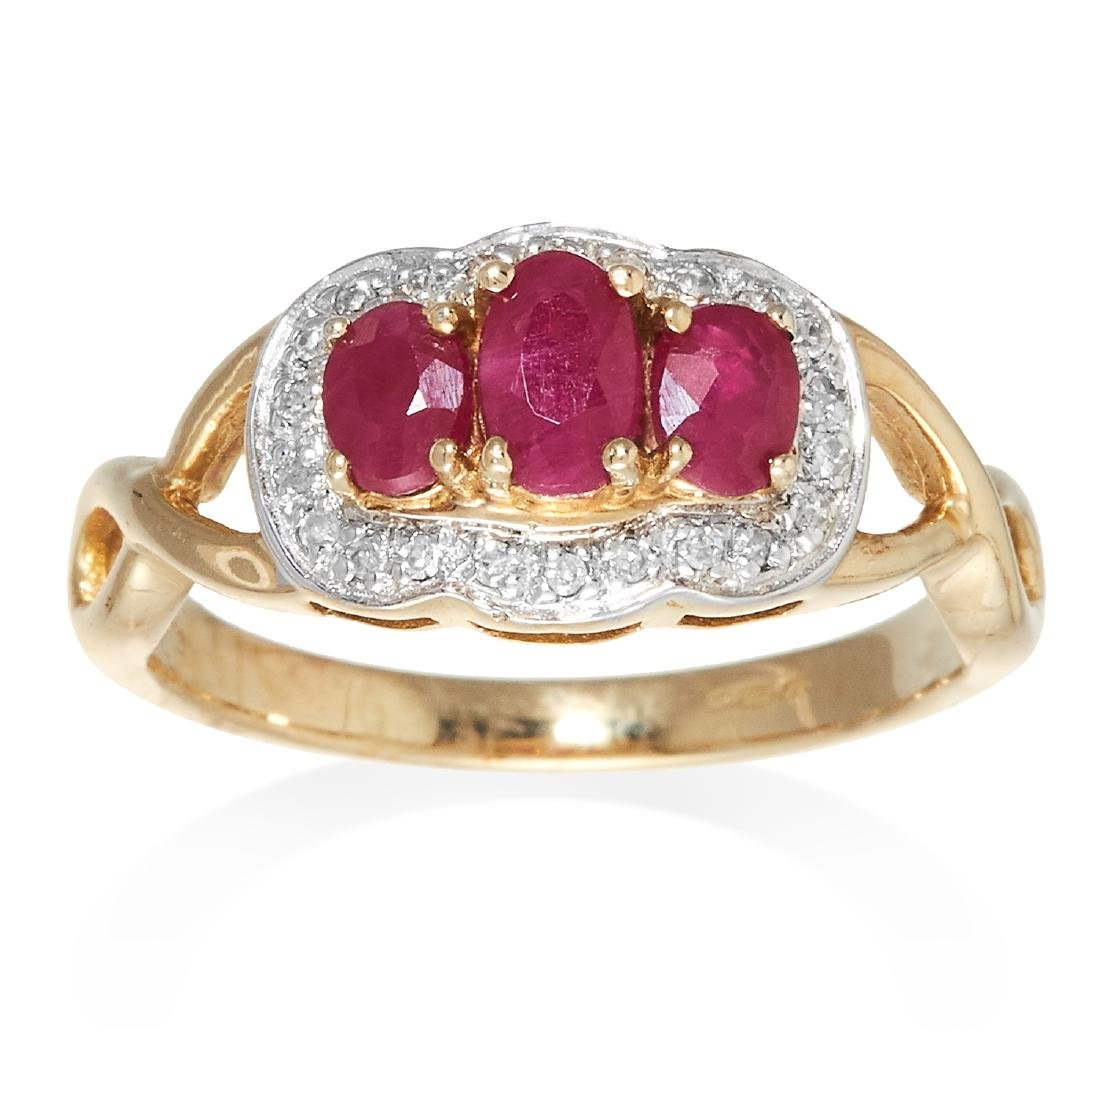 A RUBY AND DIAMOND DRESS RING in 9ct yellow gold, set